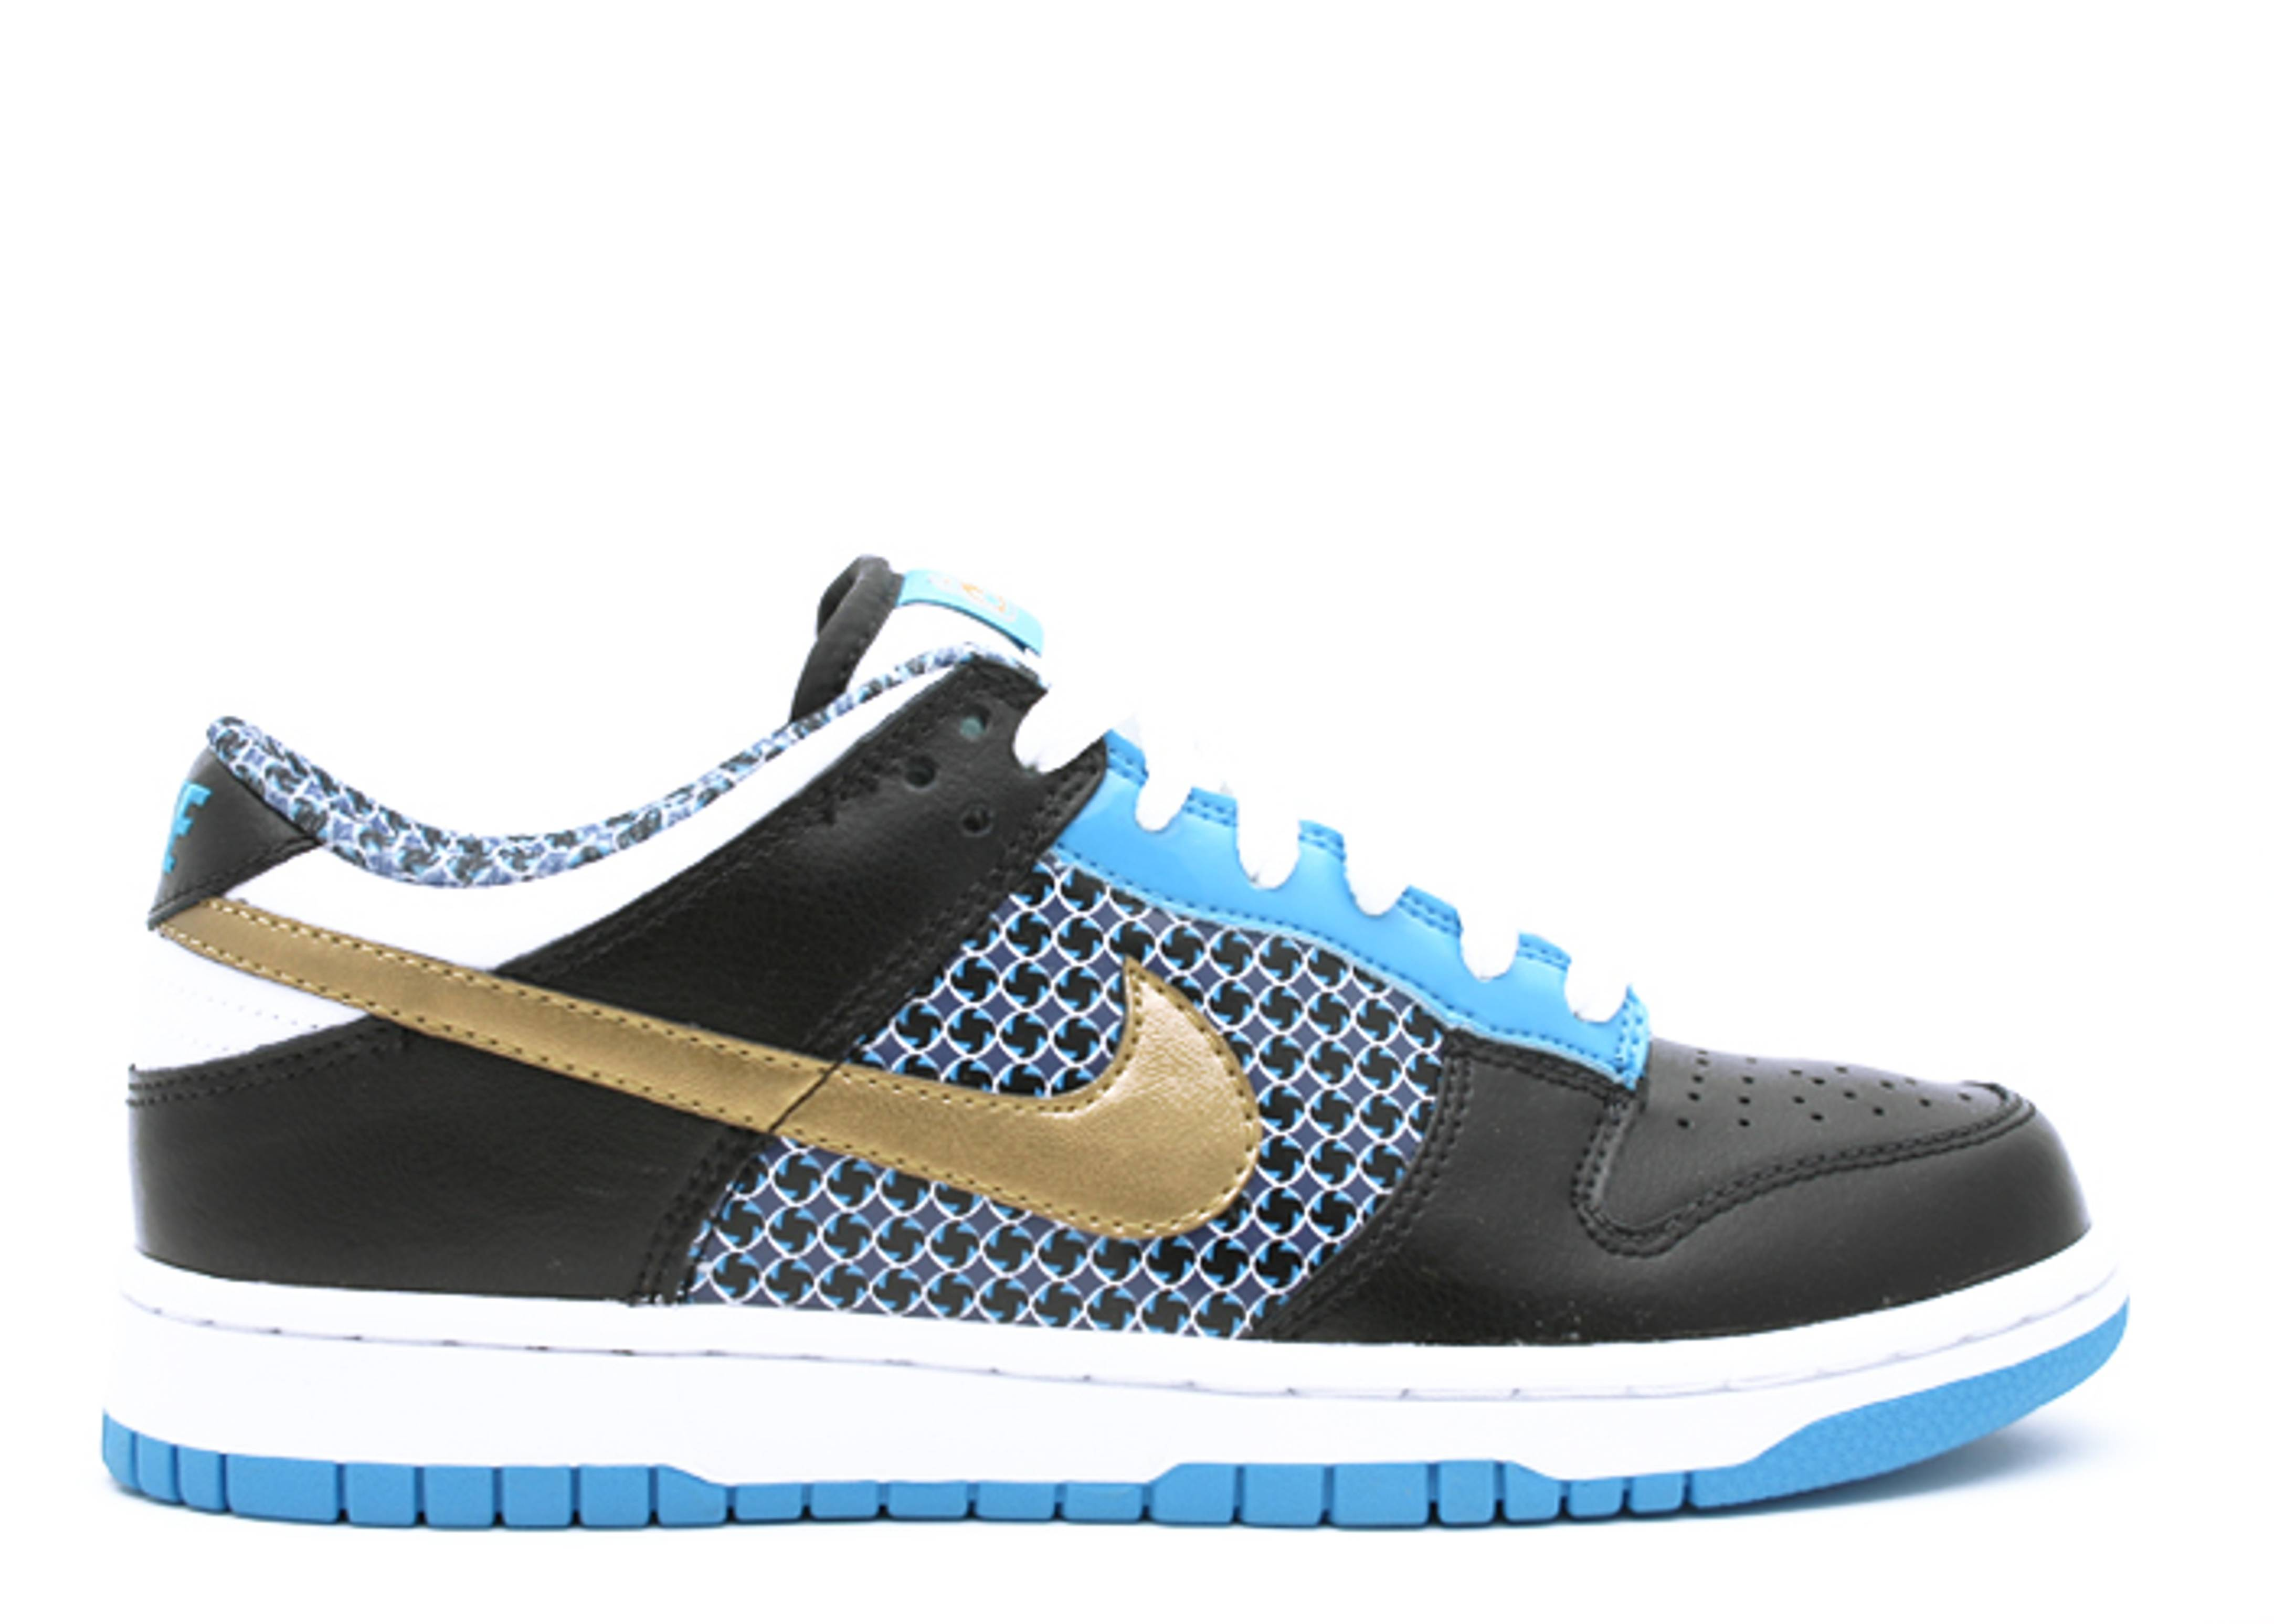 w's dunk low 6.0